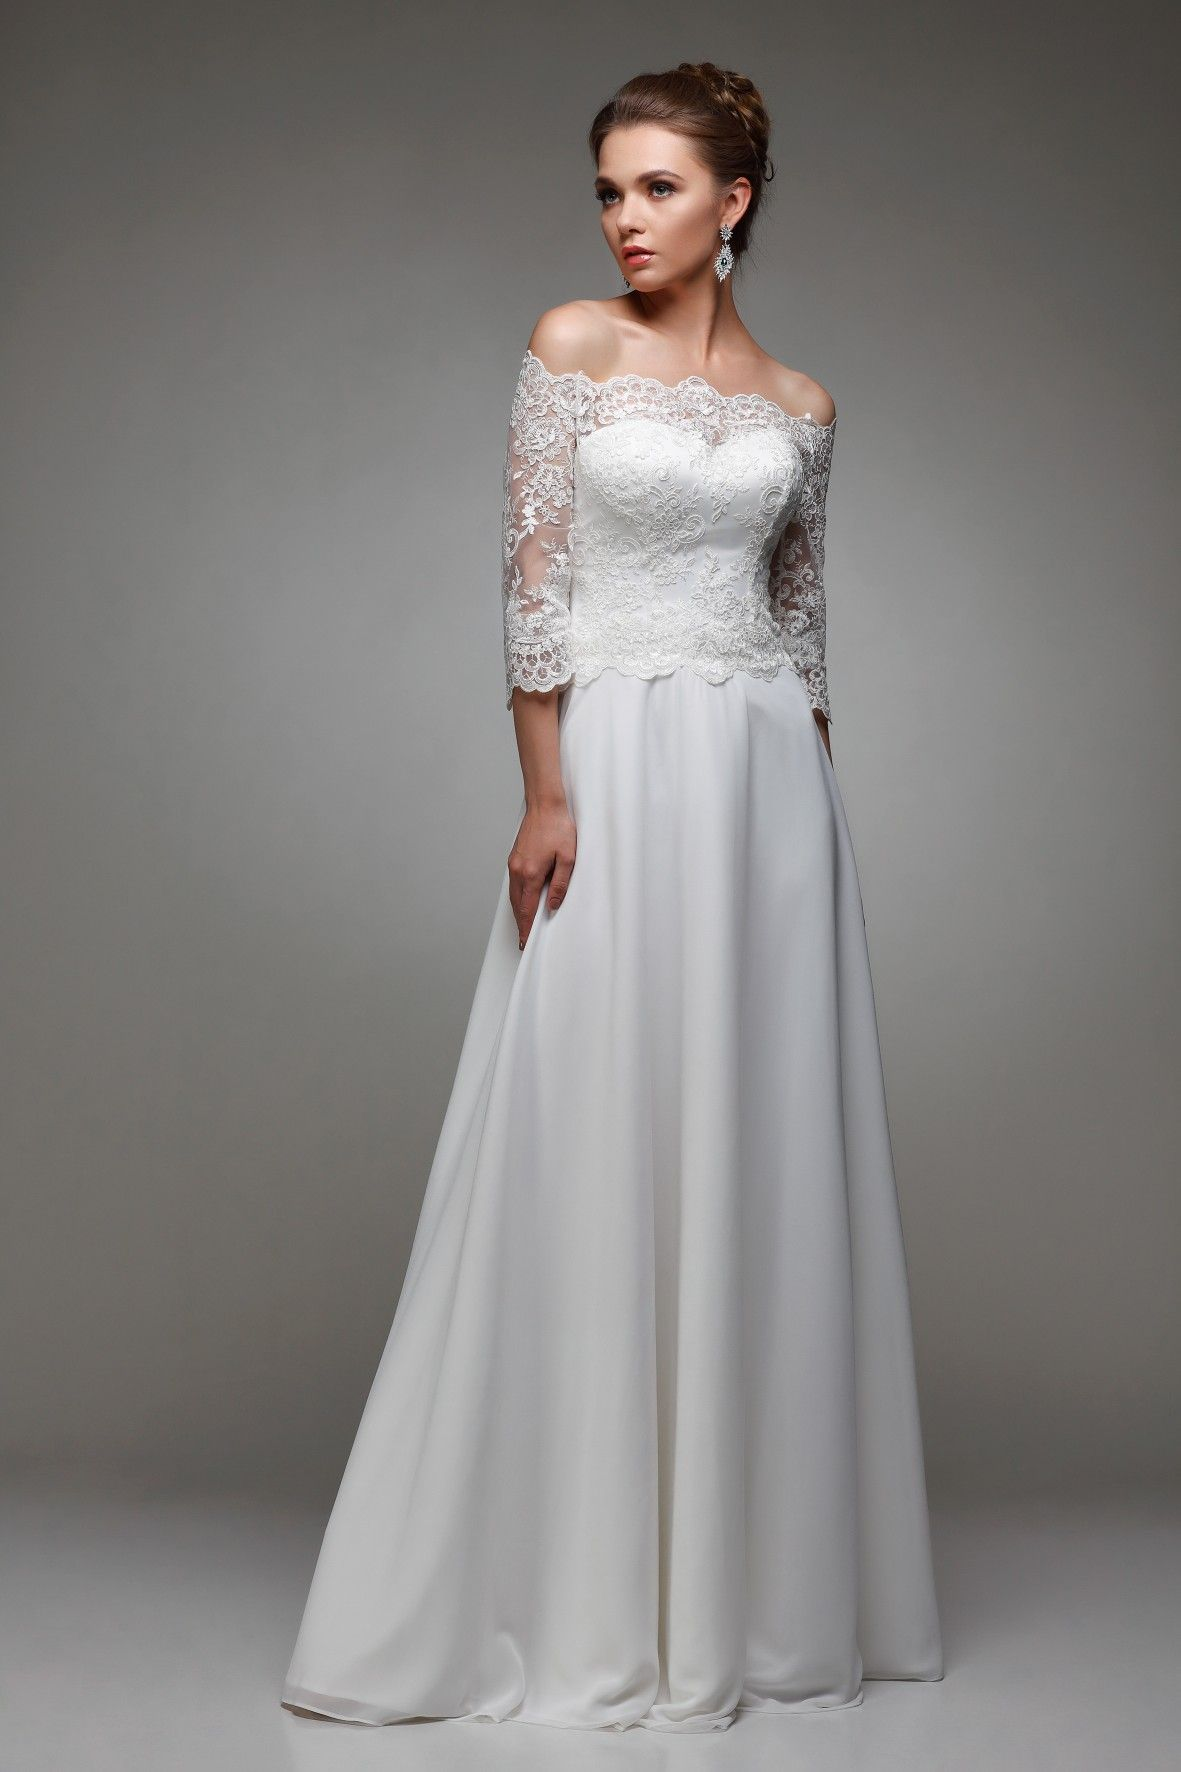 Pin auf Wedding dresses ღ